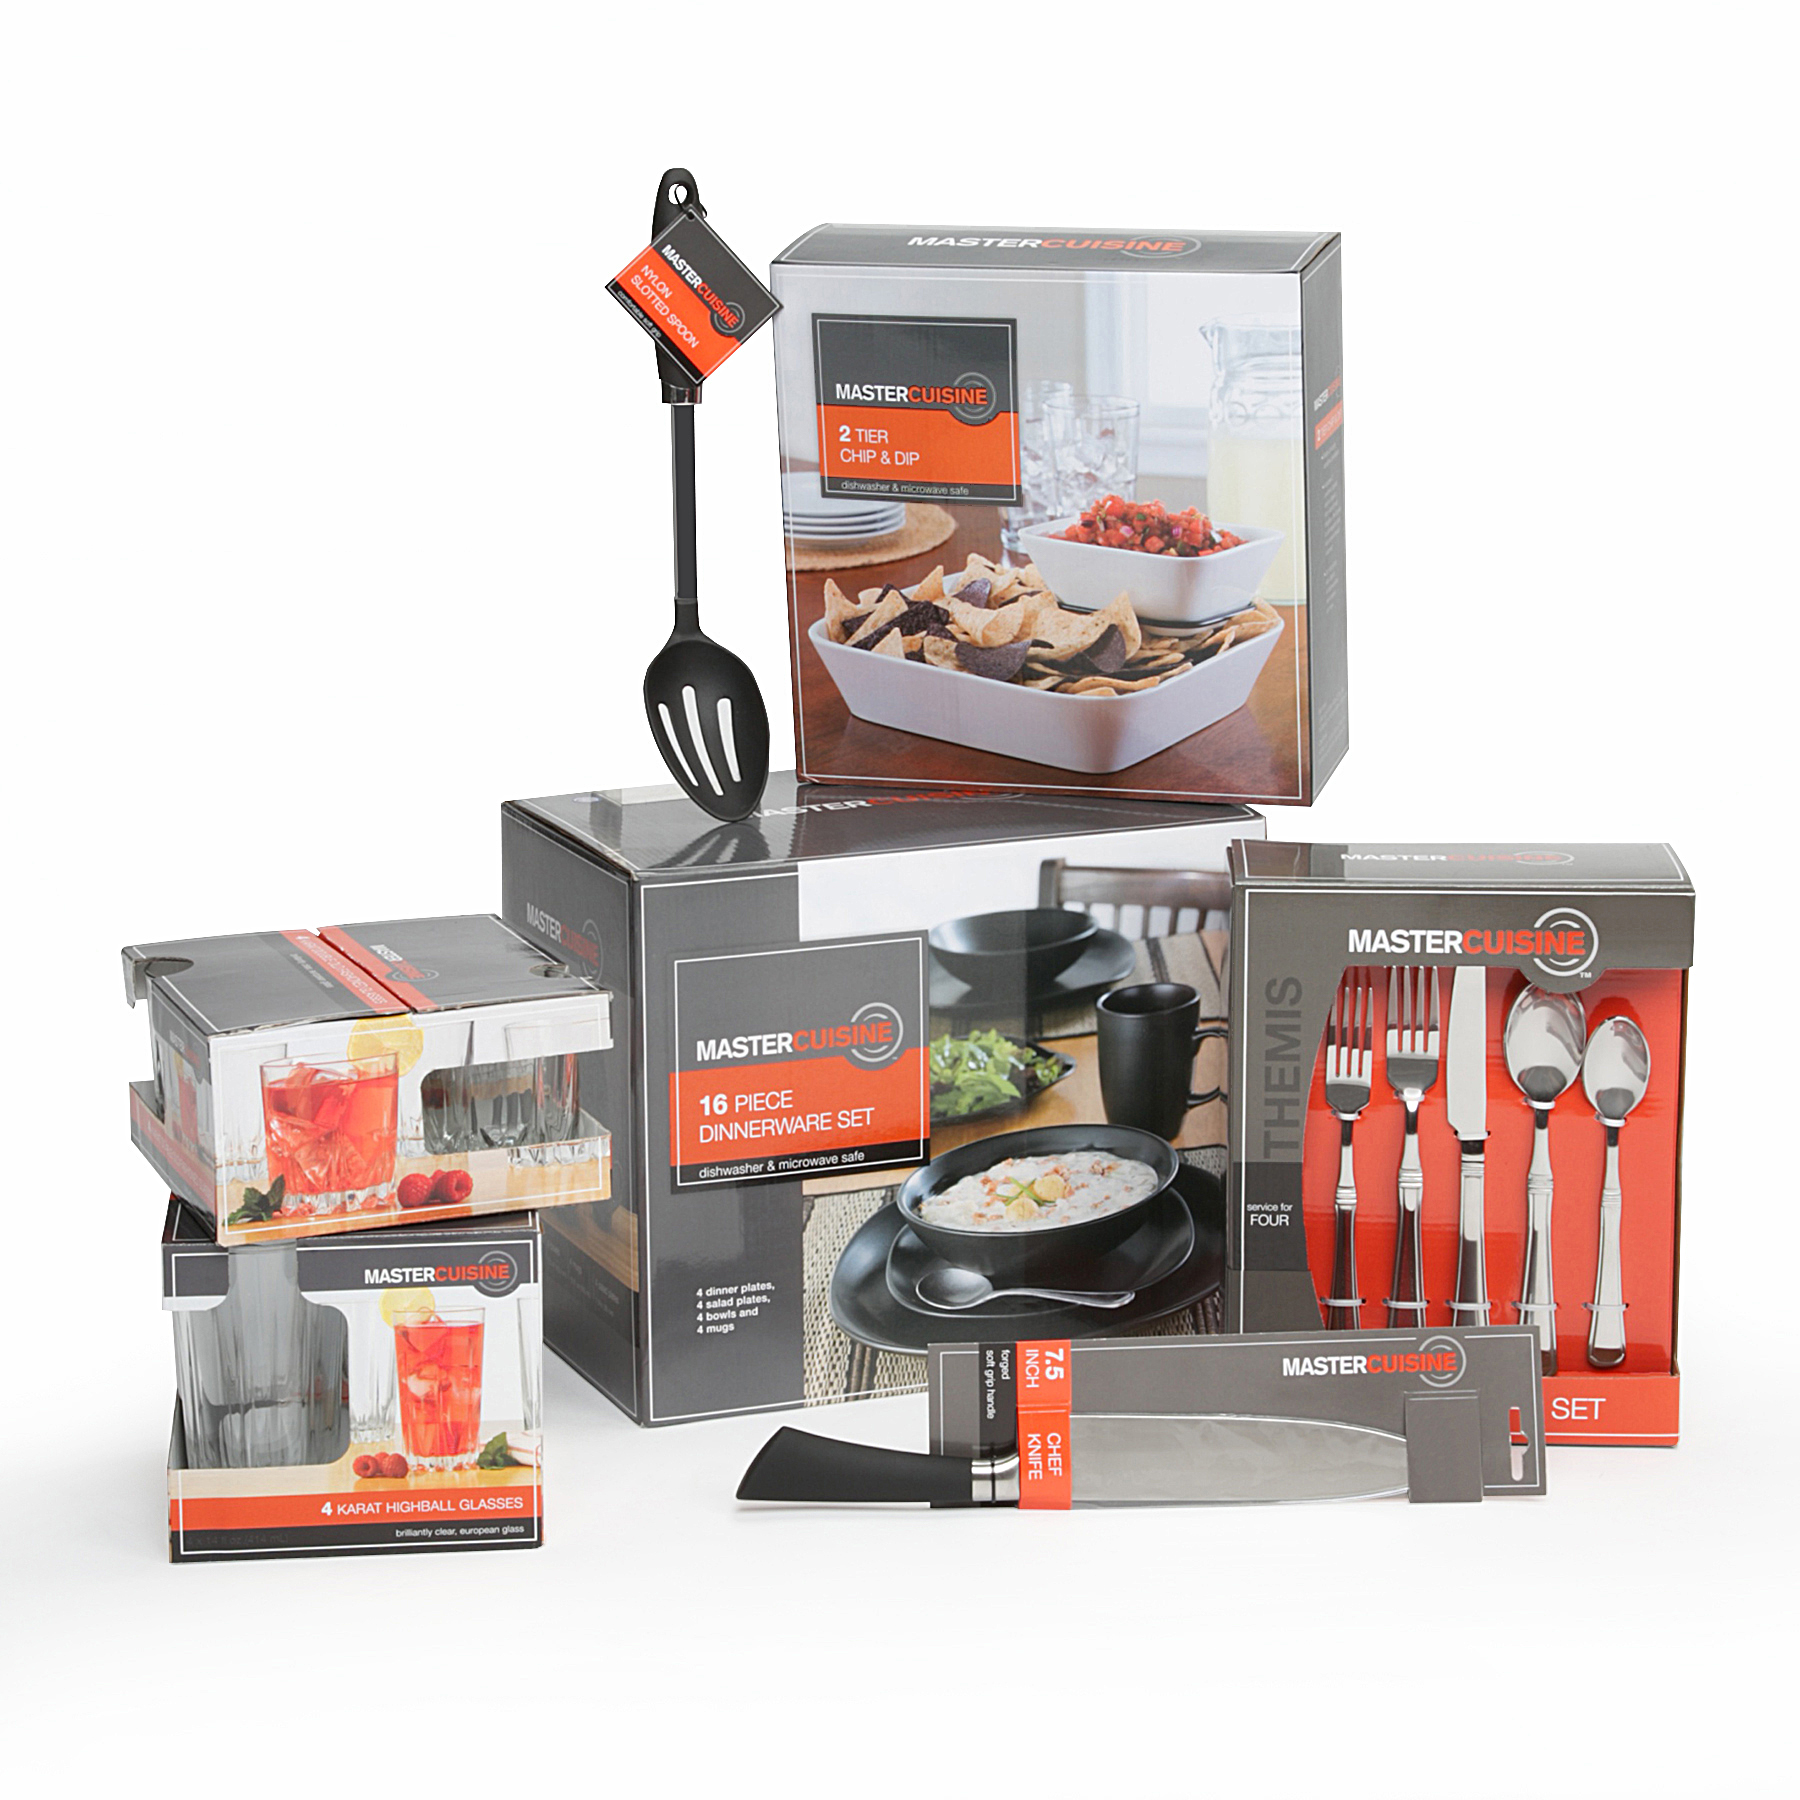 Mastercuisine big lots private label by jon fehrman at for Art and cuisine cookware